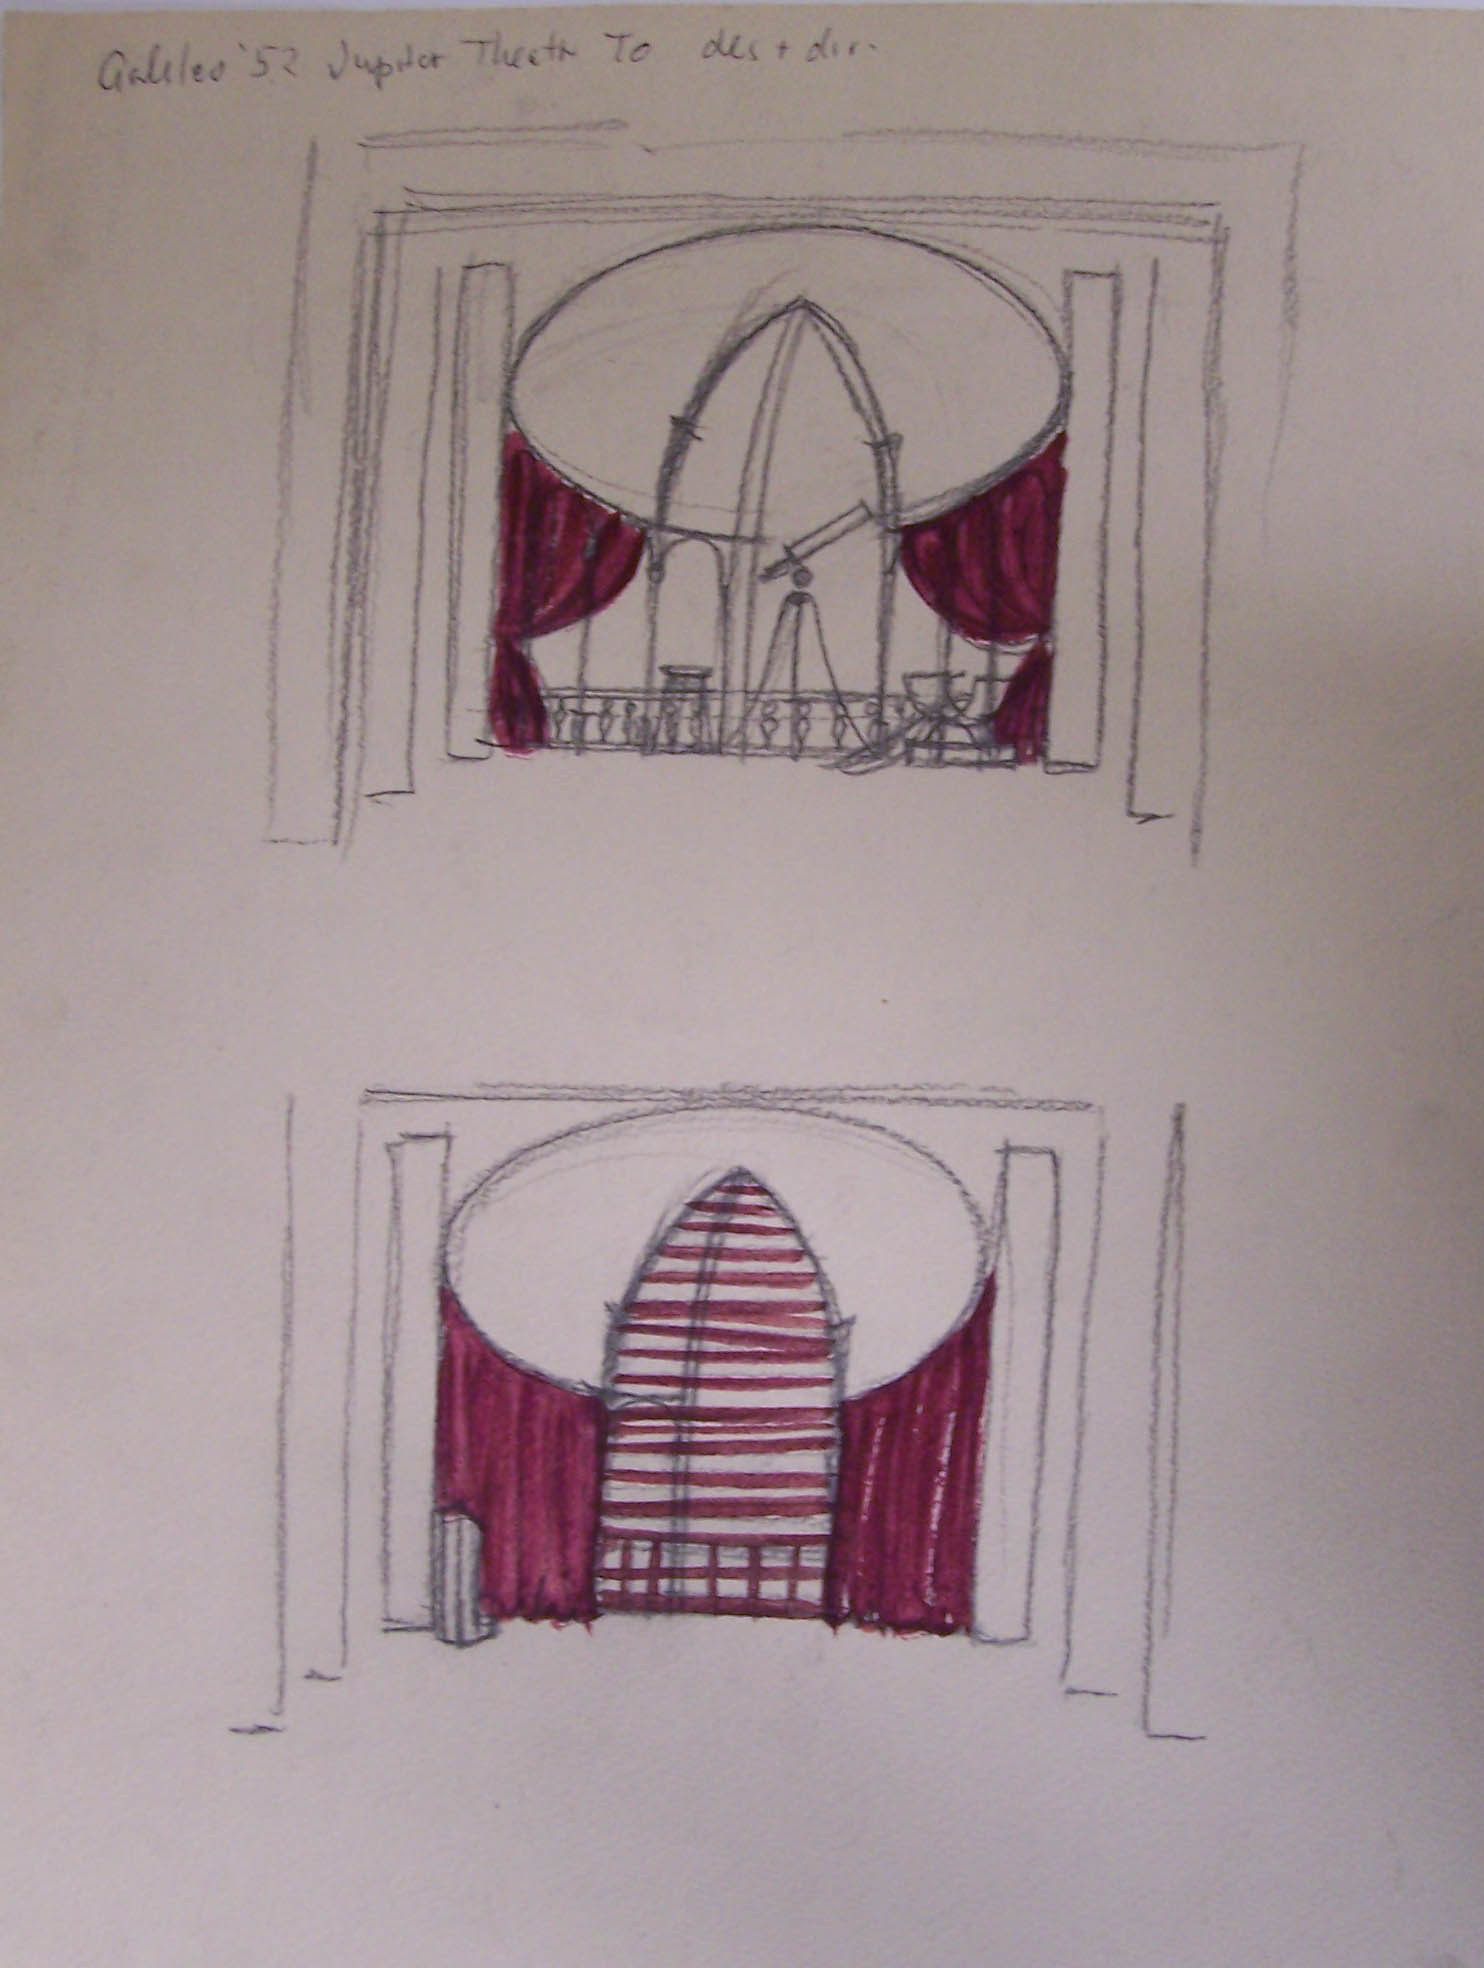 Whittaker set design for Galileo